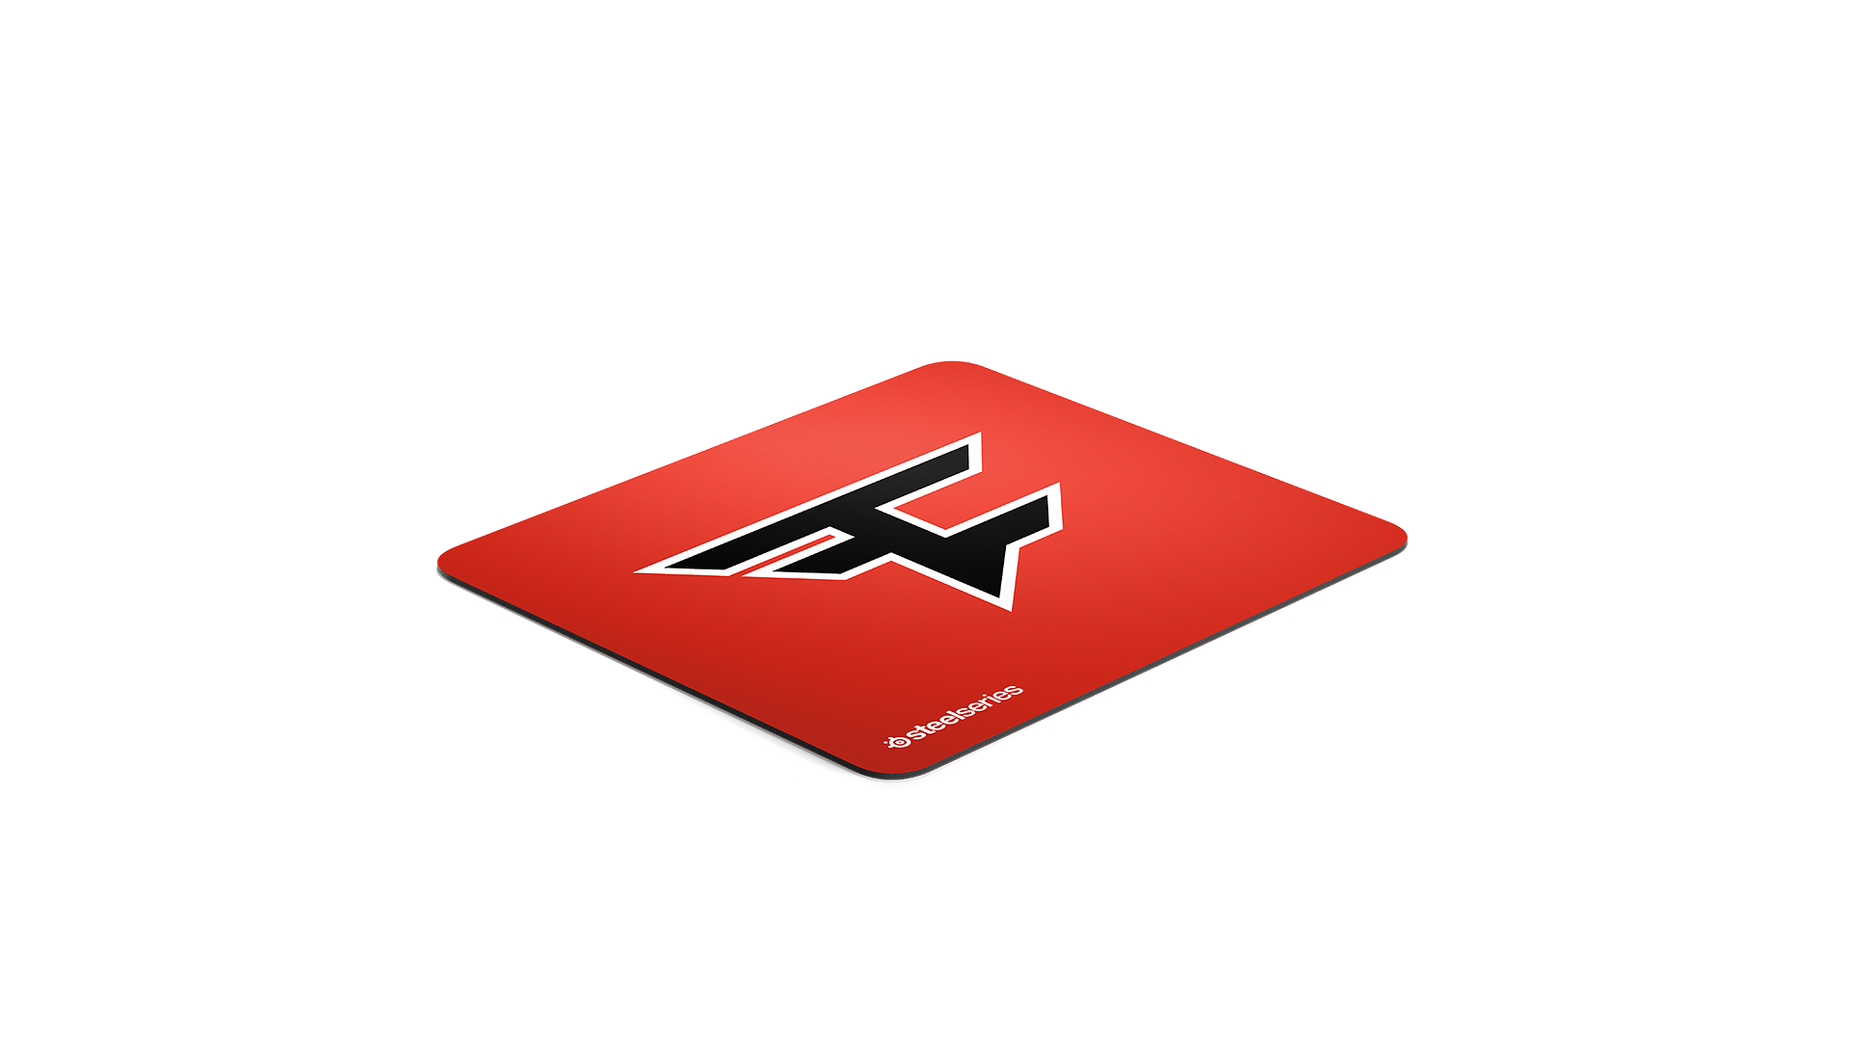 Mousepad side view